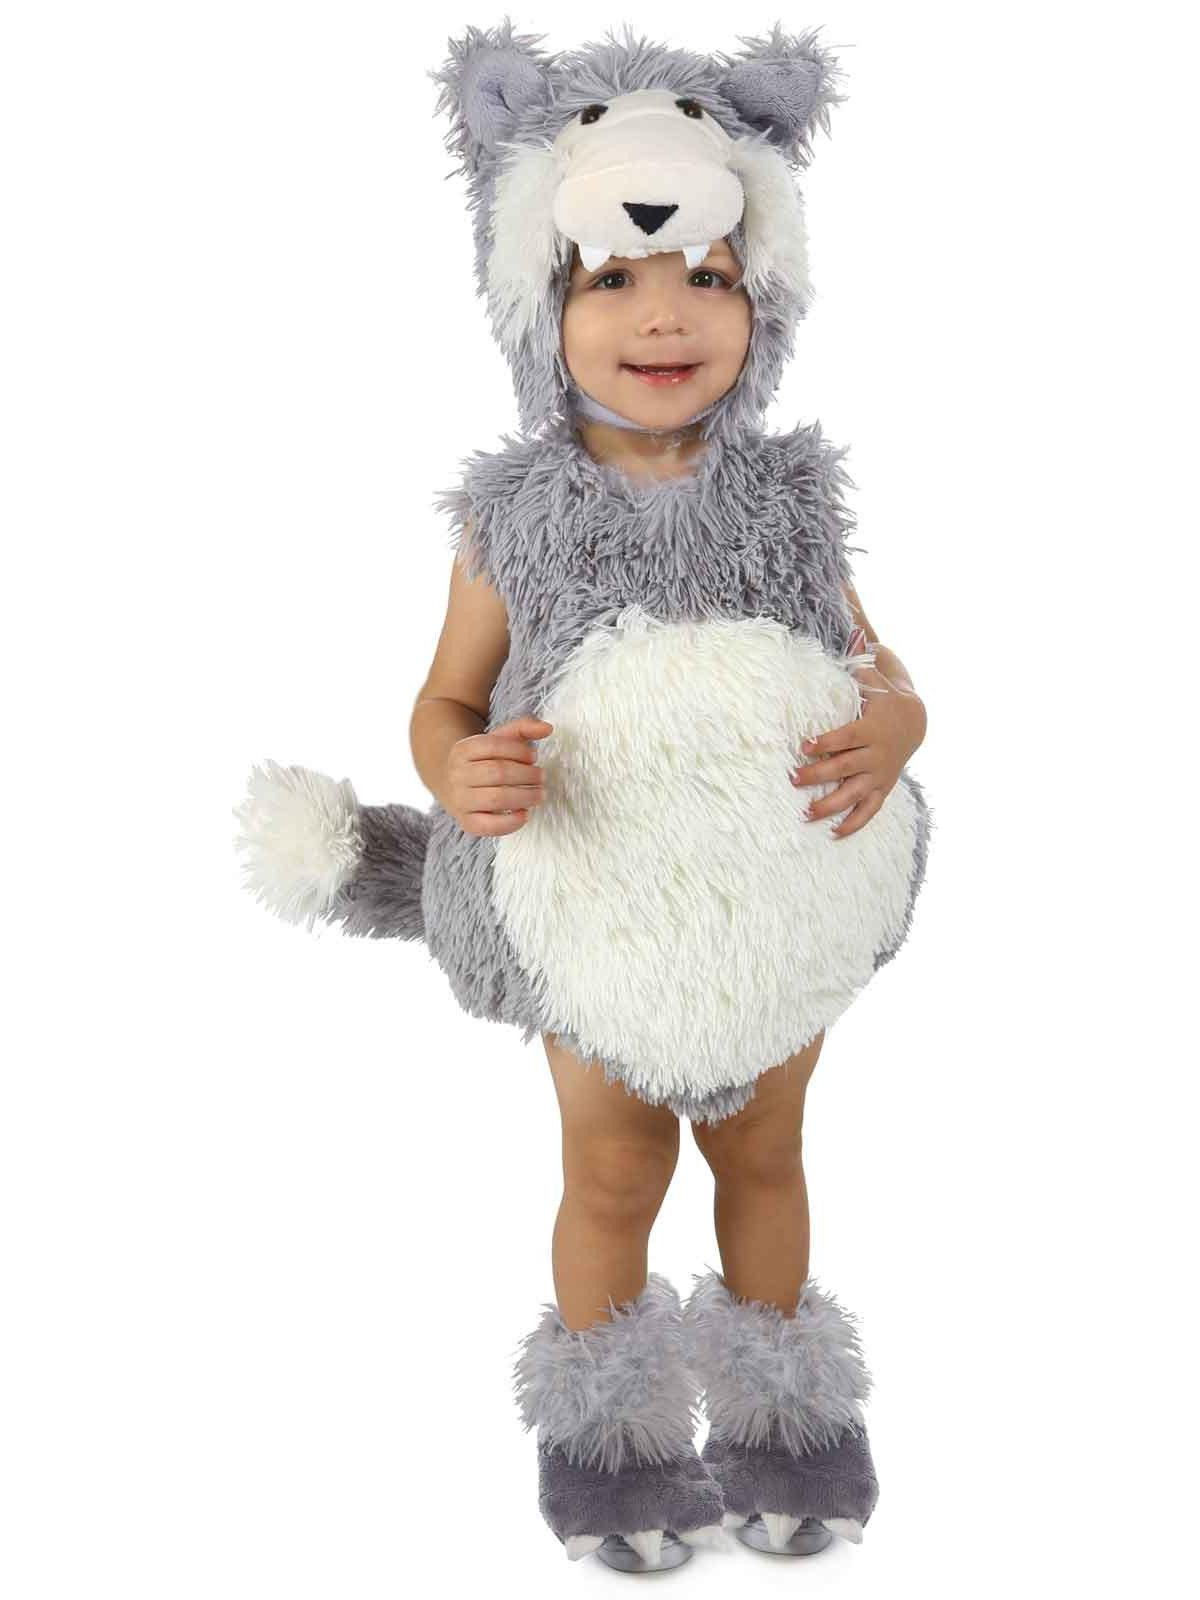 vintage big bad wolf infant/toddler costume - baby halloween